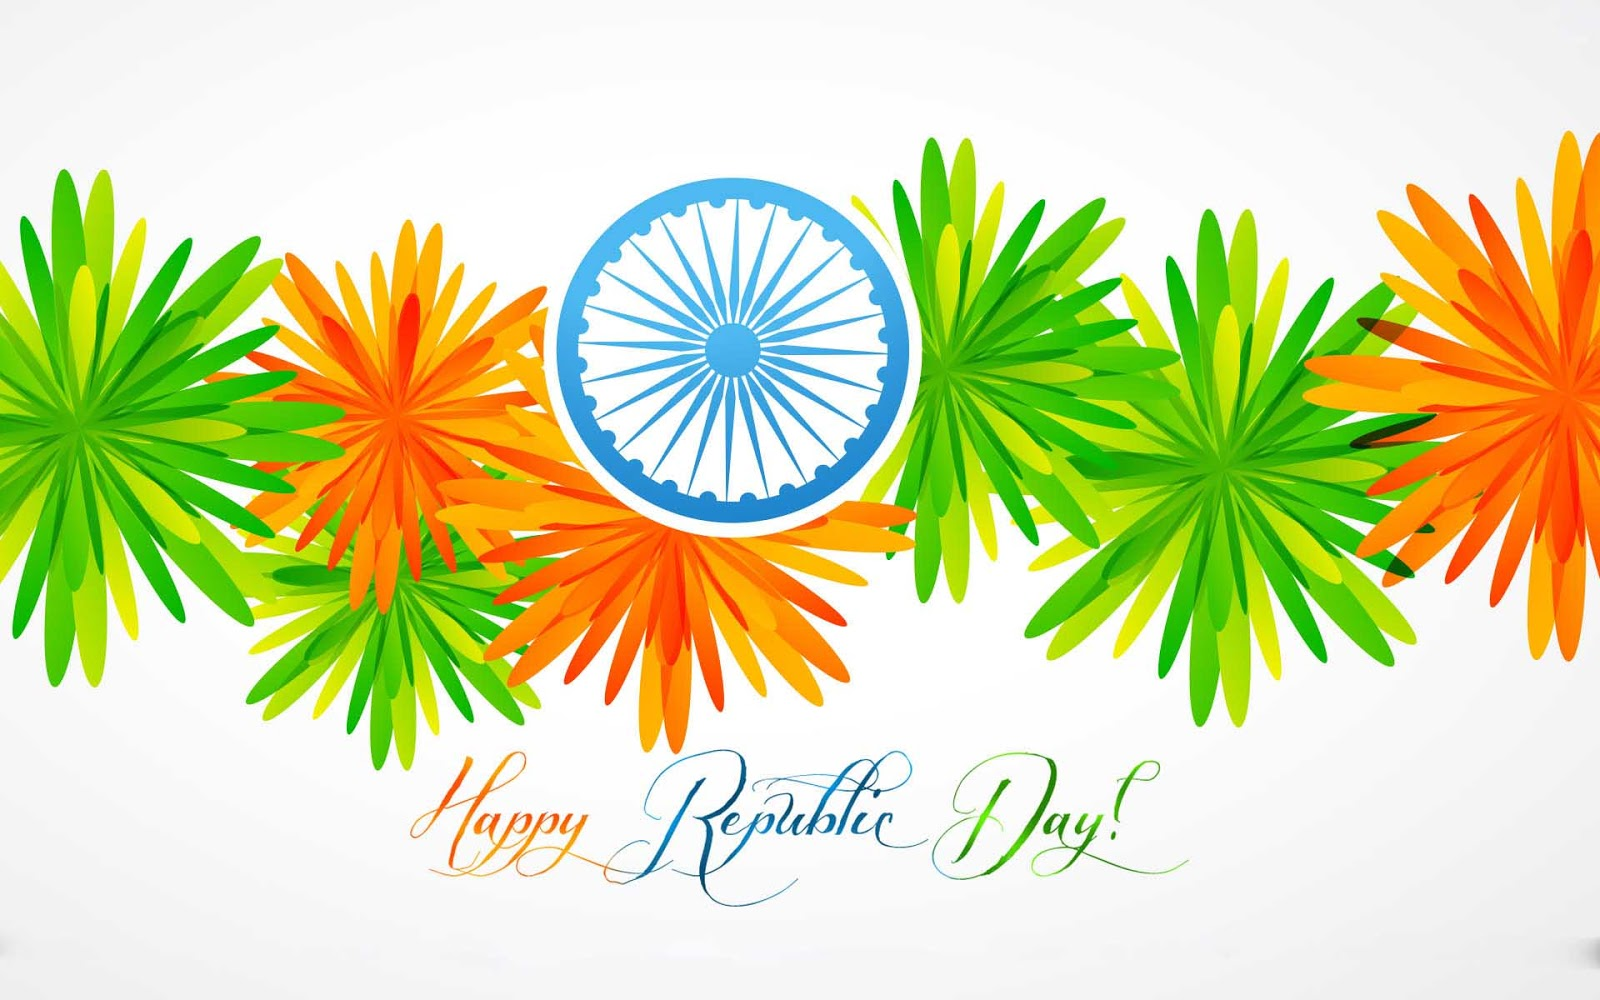 Republic day images 2019 free download happy republic for 26 january decoration